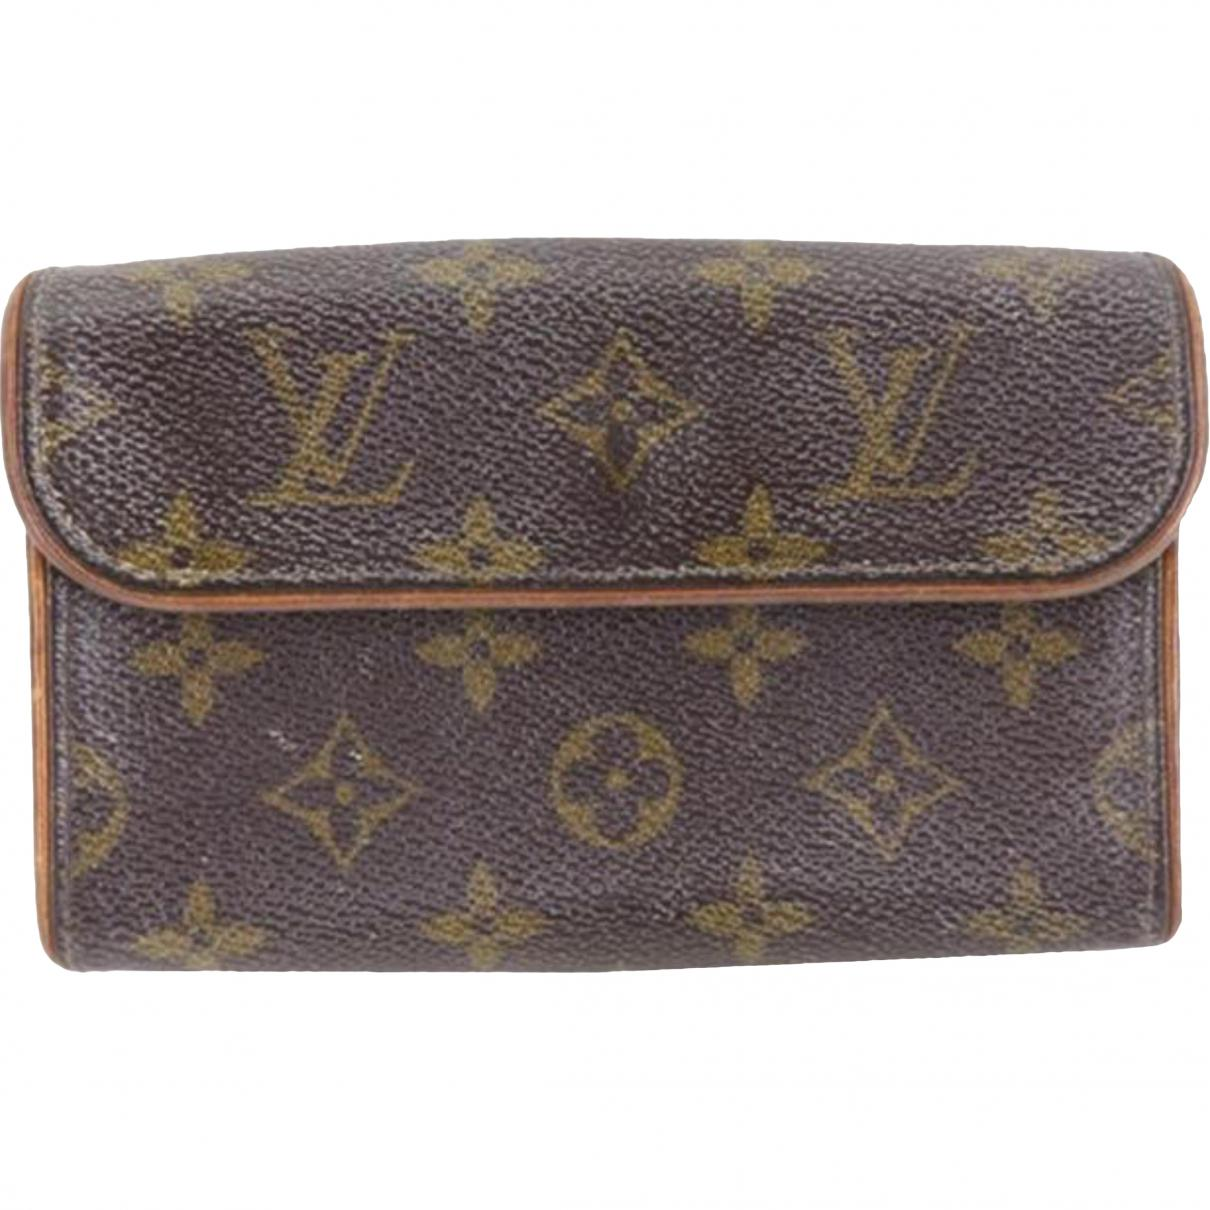 Pre-owned - Cloth clutch bag Louis Vuitton Rt1ZELD6k8